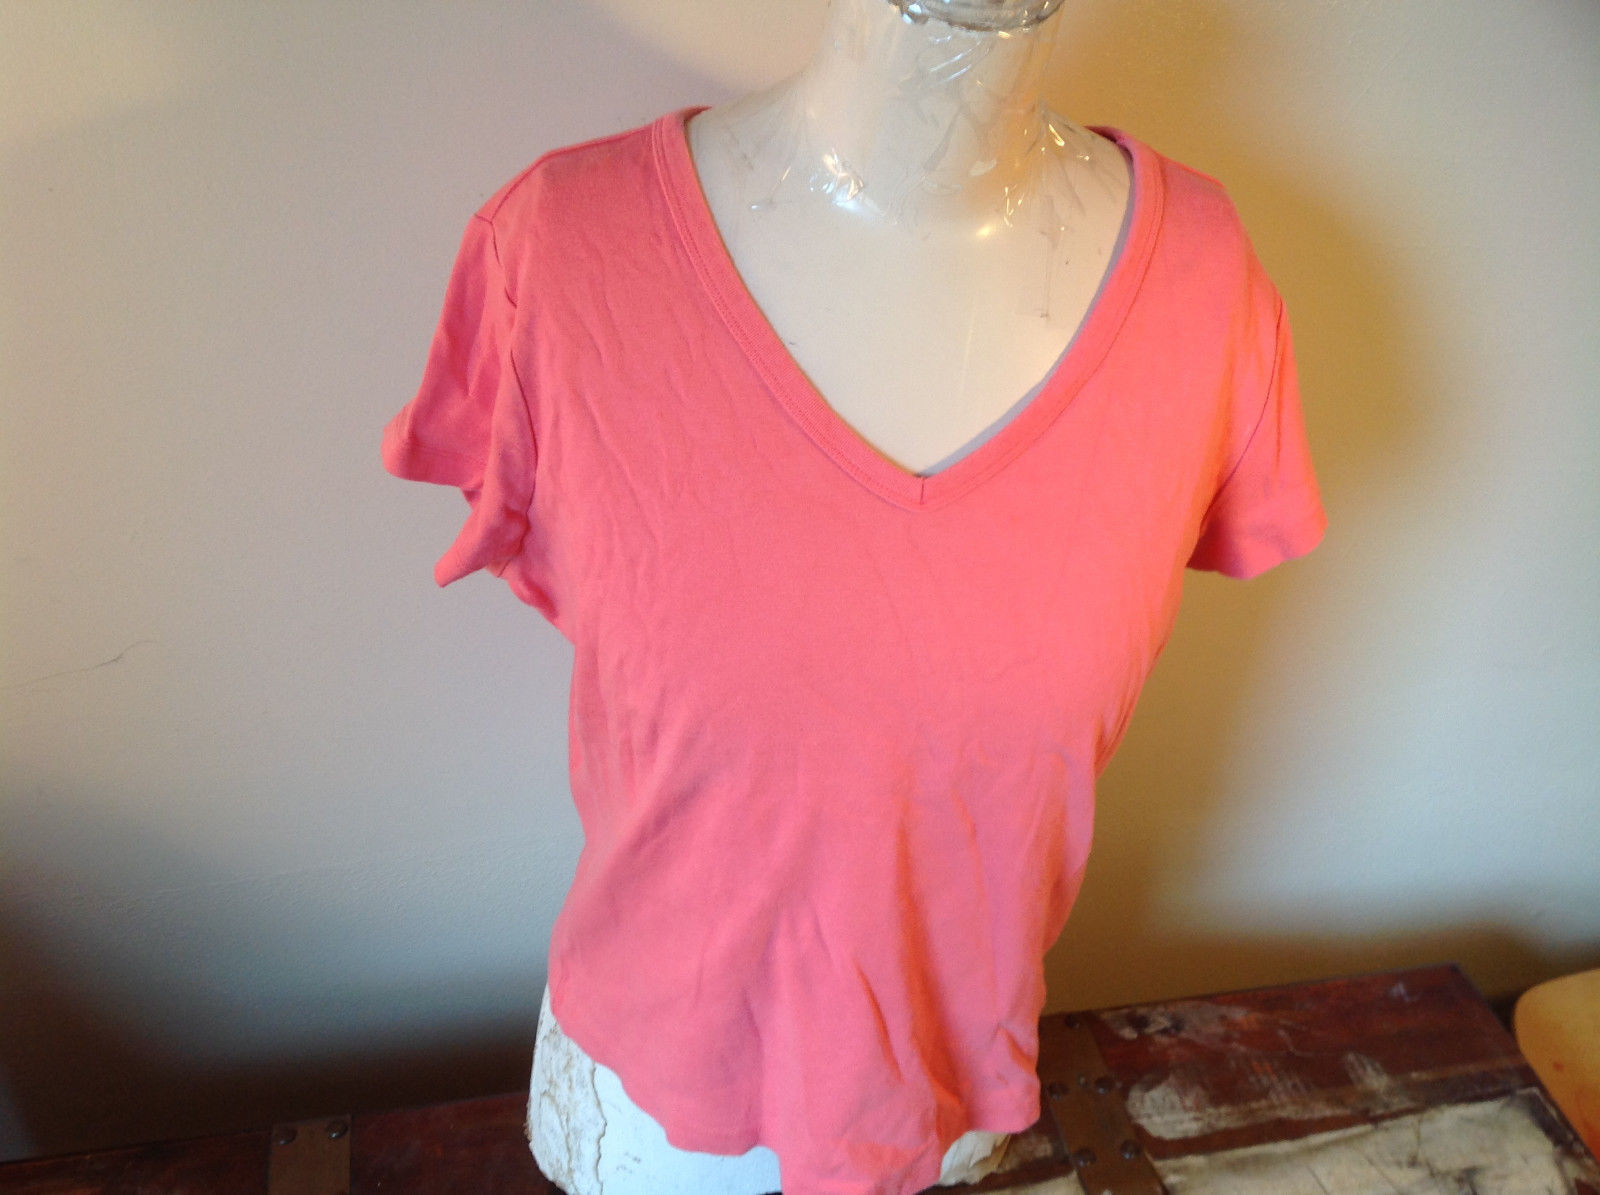 Pink Relaxed Fit Short Sleeve V-Neck T-Shirt Made in Guatemala  Size XL